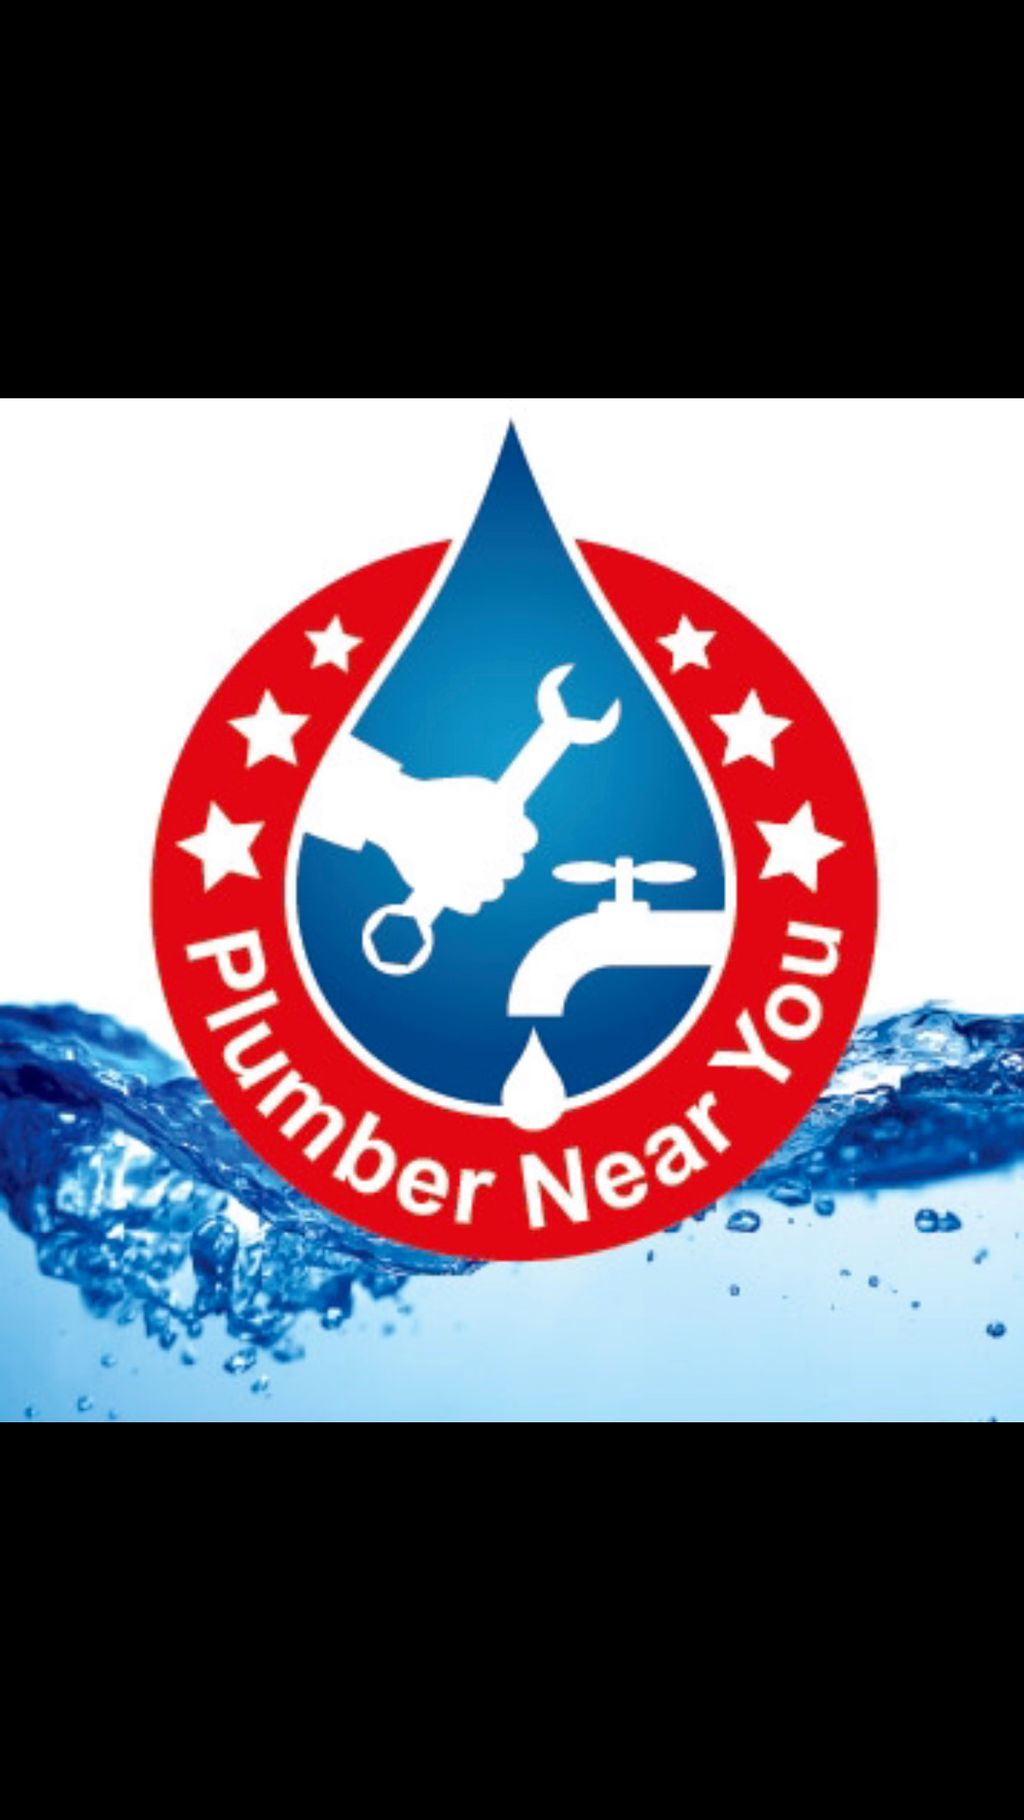 PLUMBER NEAR YOU LLC